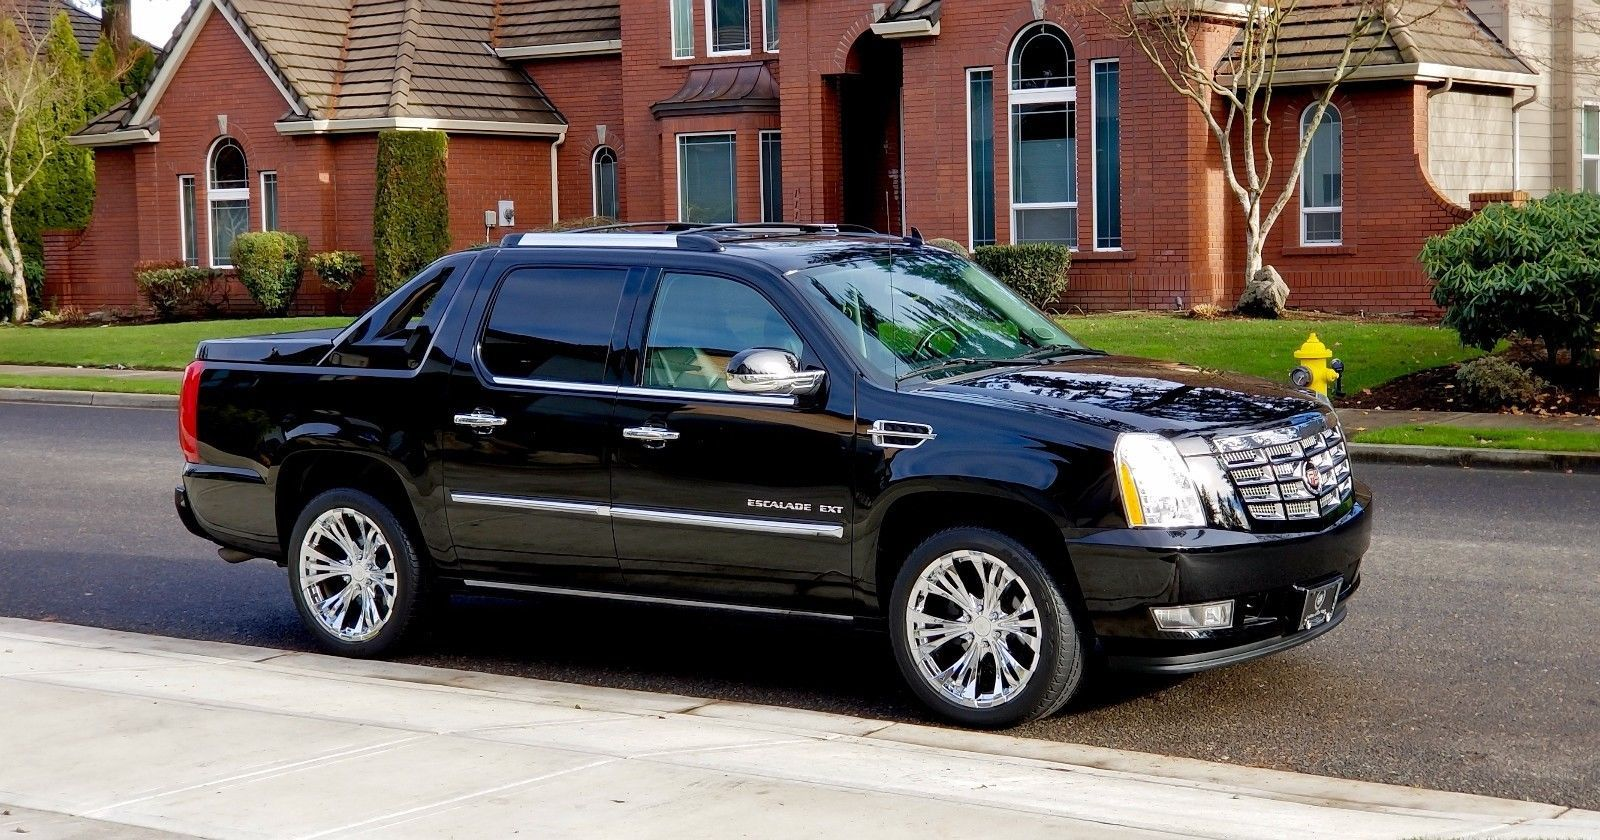 saugus entertainment at escalade mall luxury cadillac video navigation wheel used auto drive cars all dvd